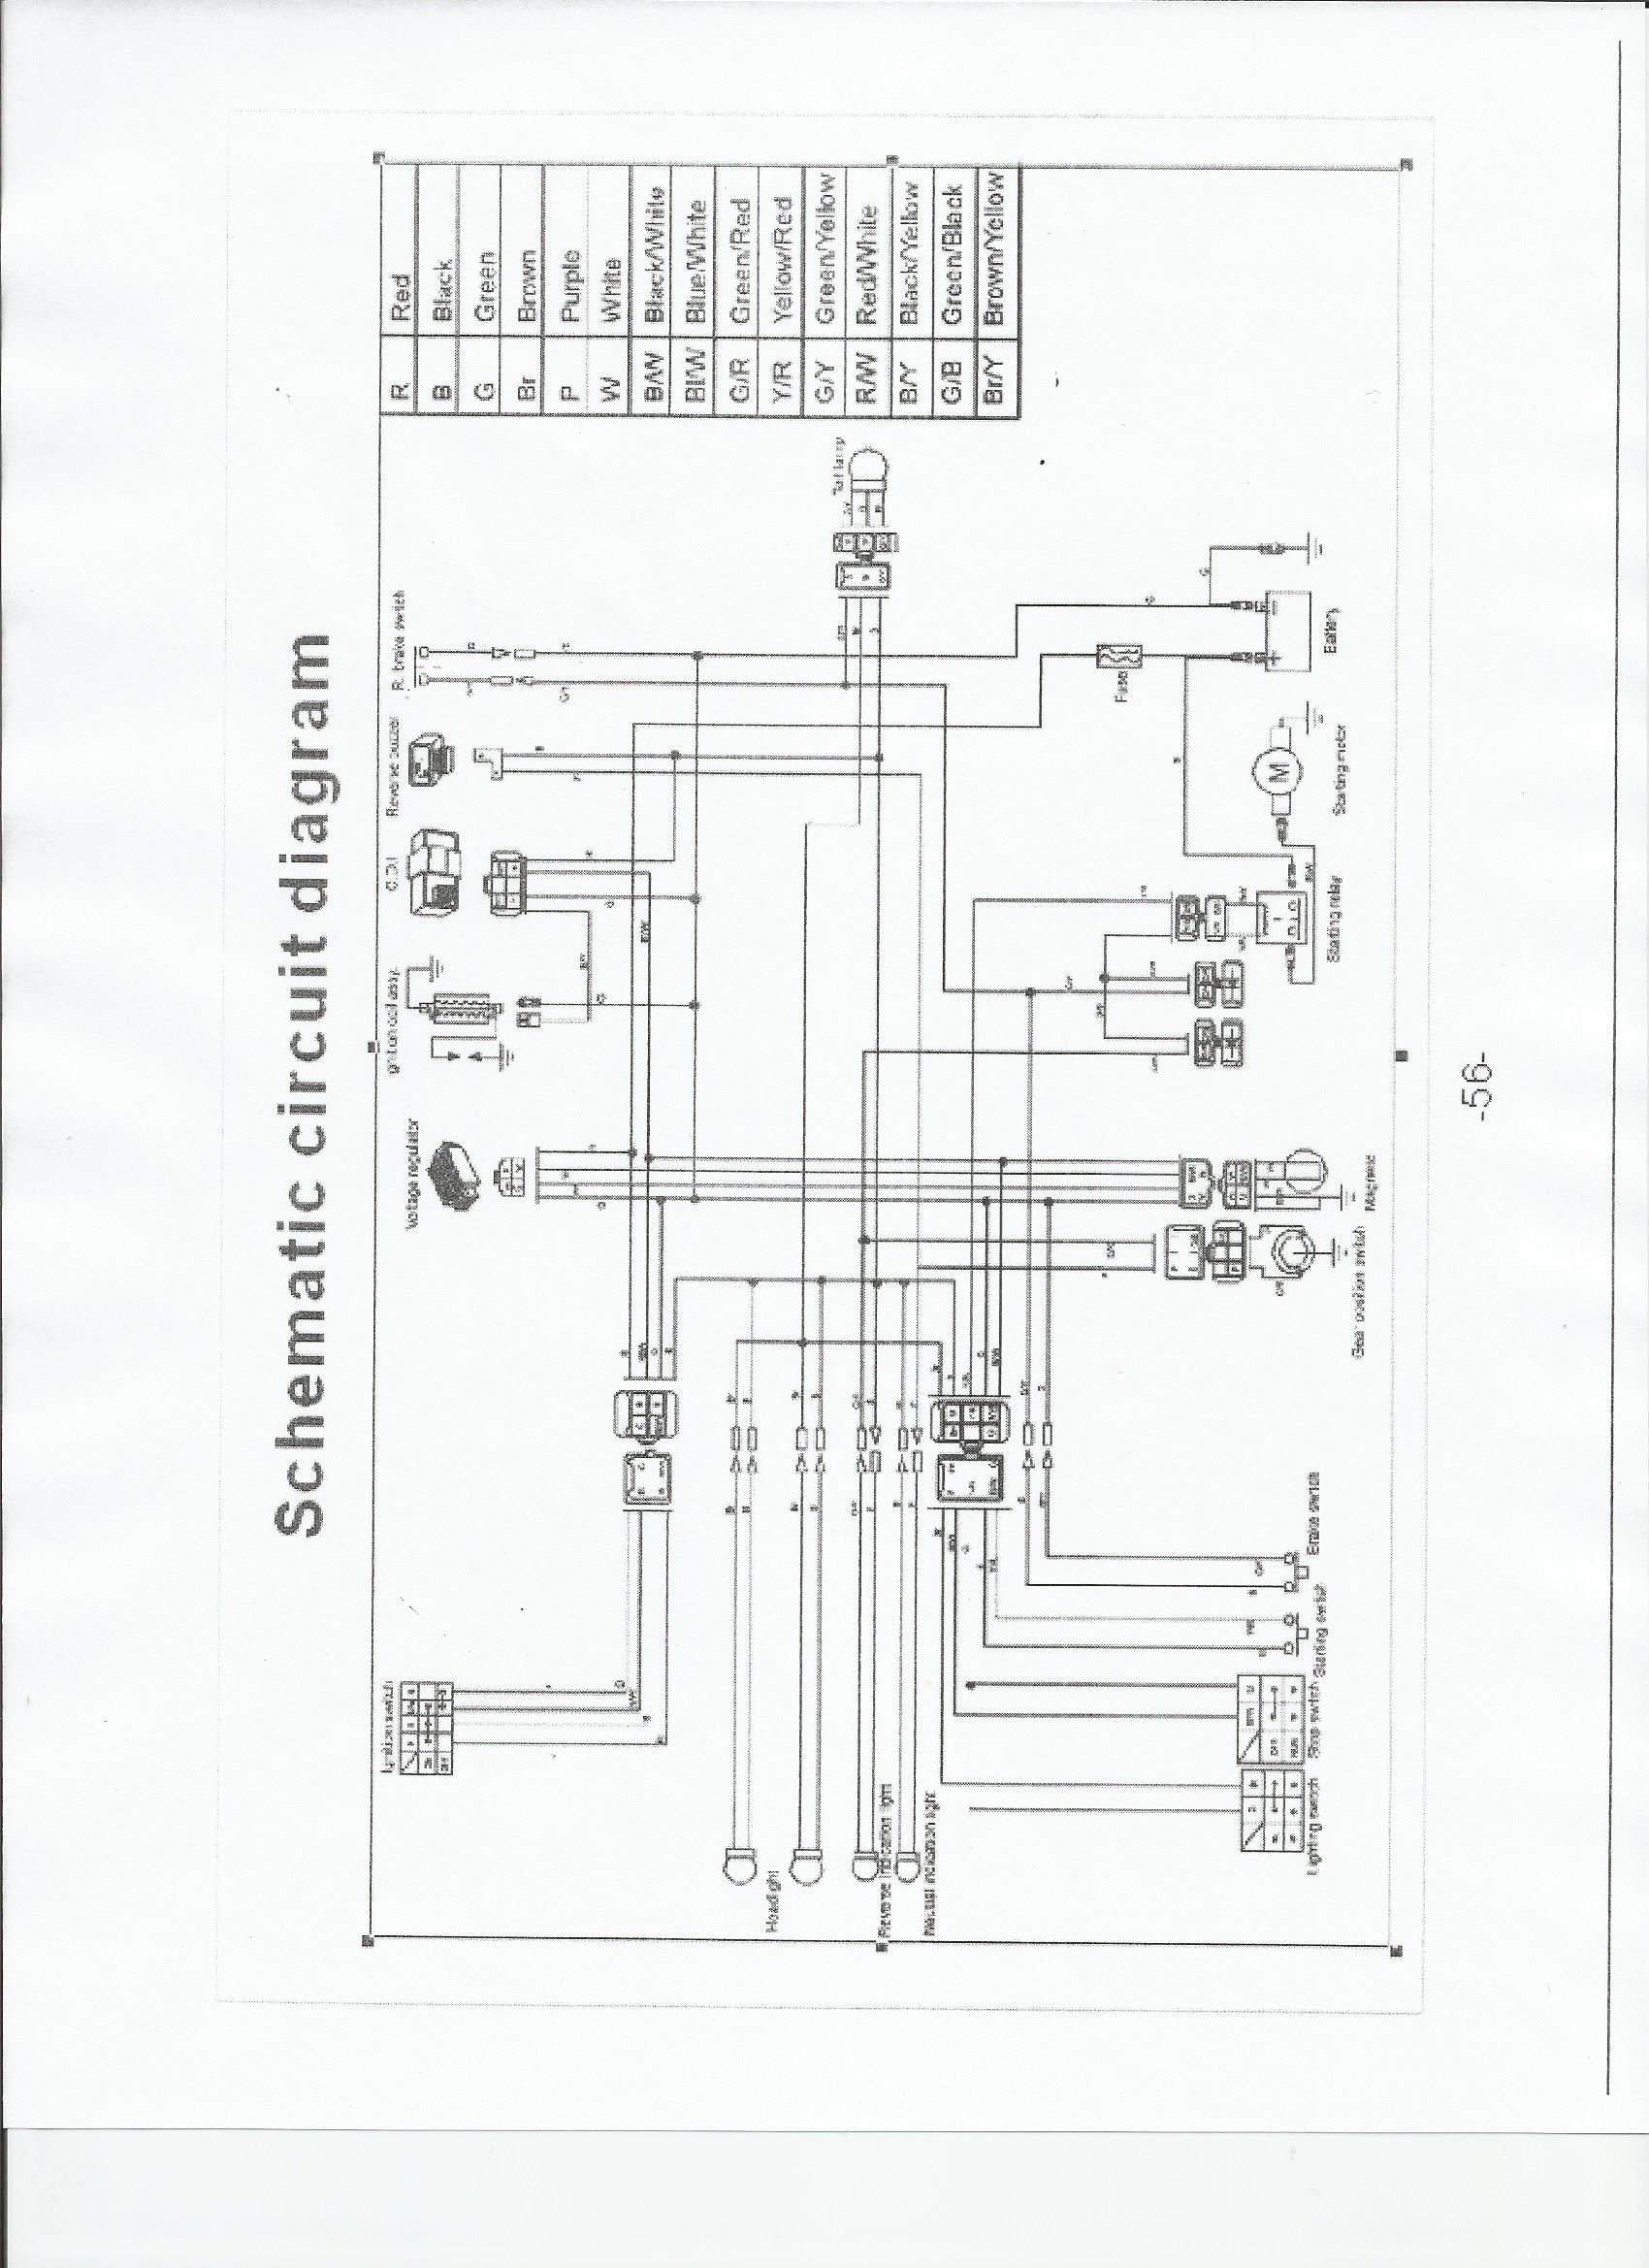 tao tao wiring schematic taotao mini and youth atv wiring schematic familygokarts support honda atv wiring diagram at gsmx.co